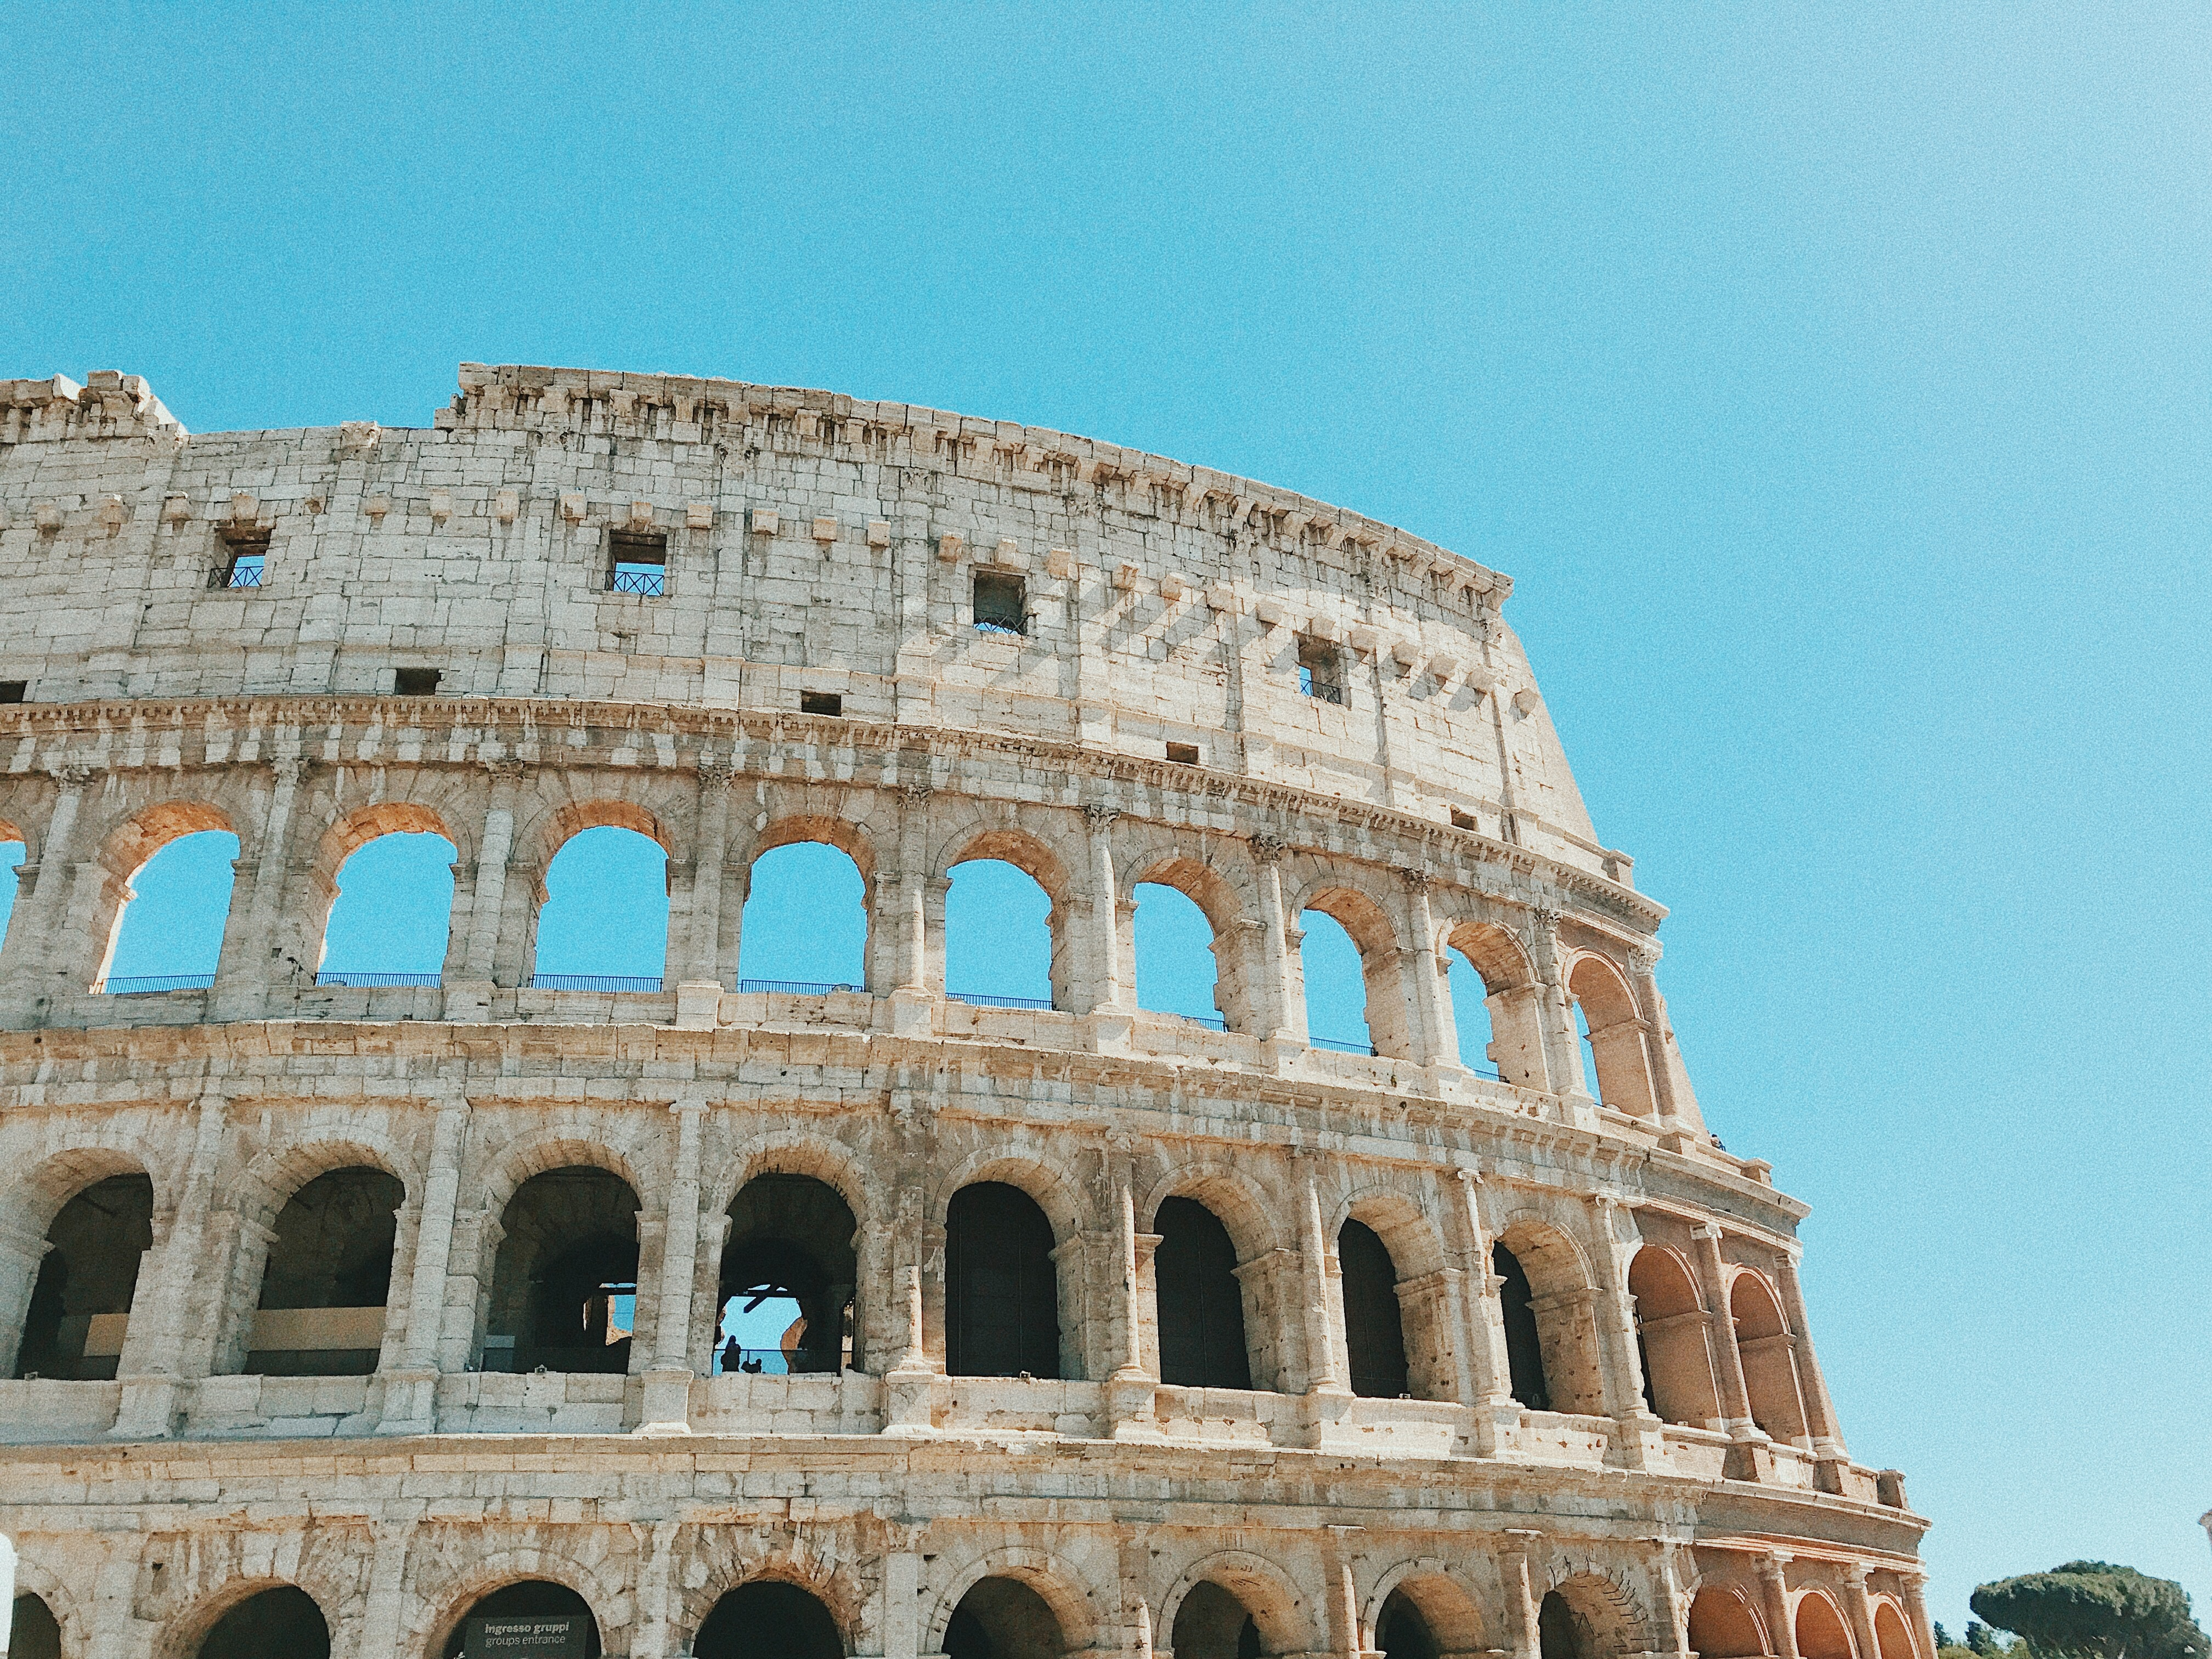 Roman coliseum with blue sky background